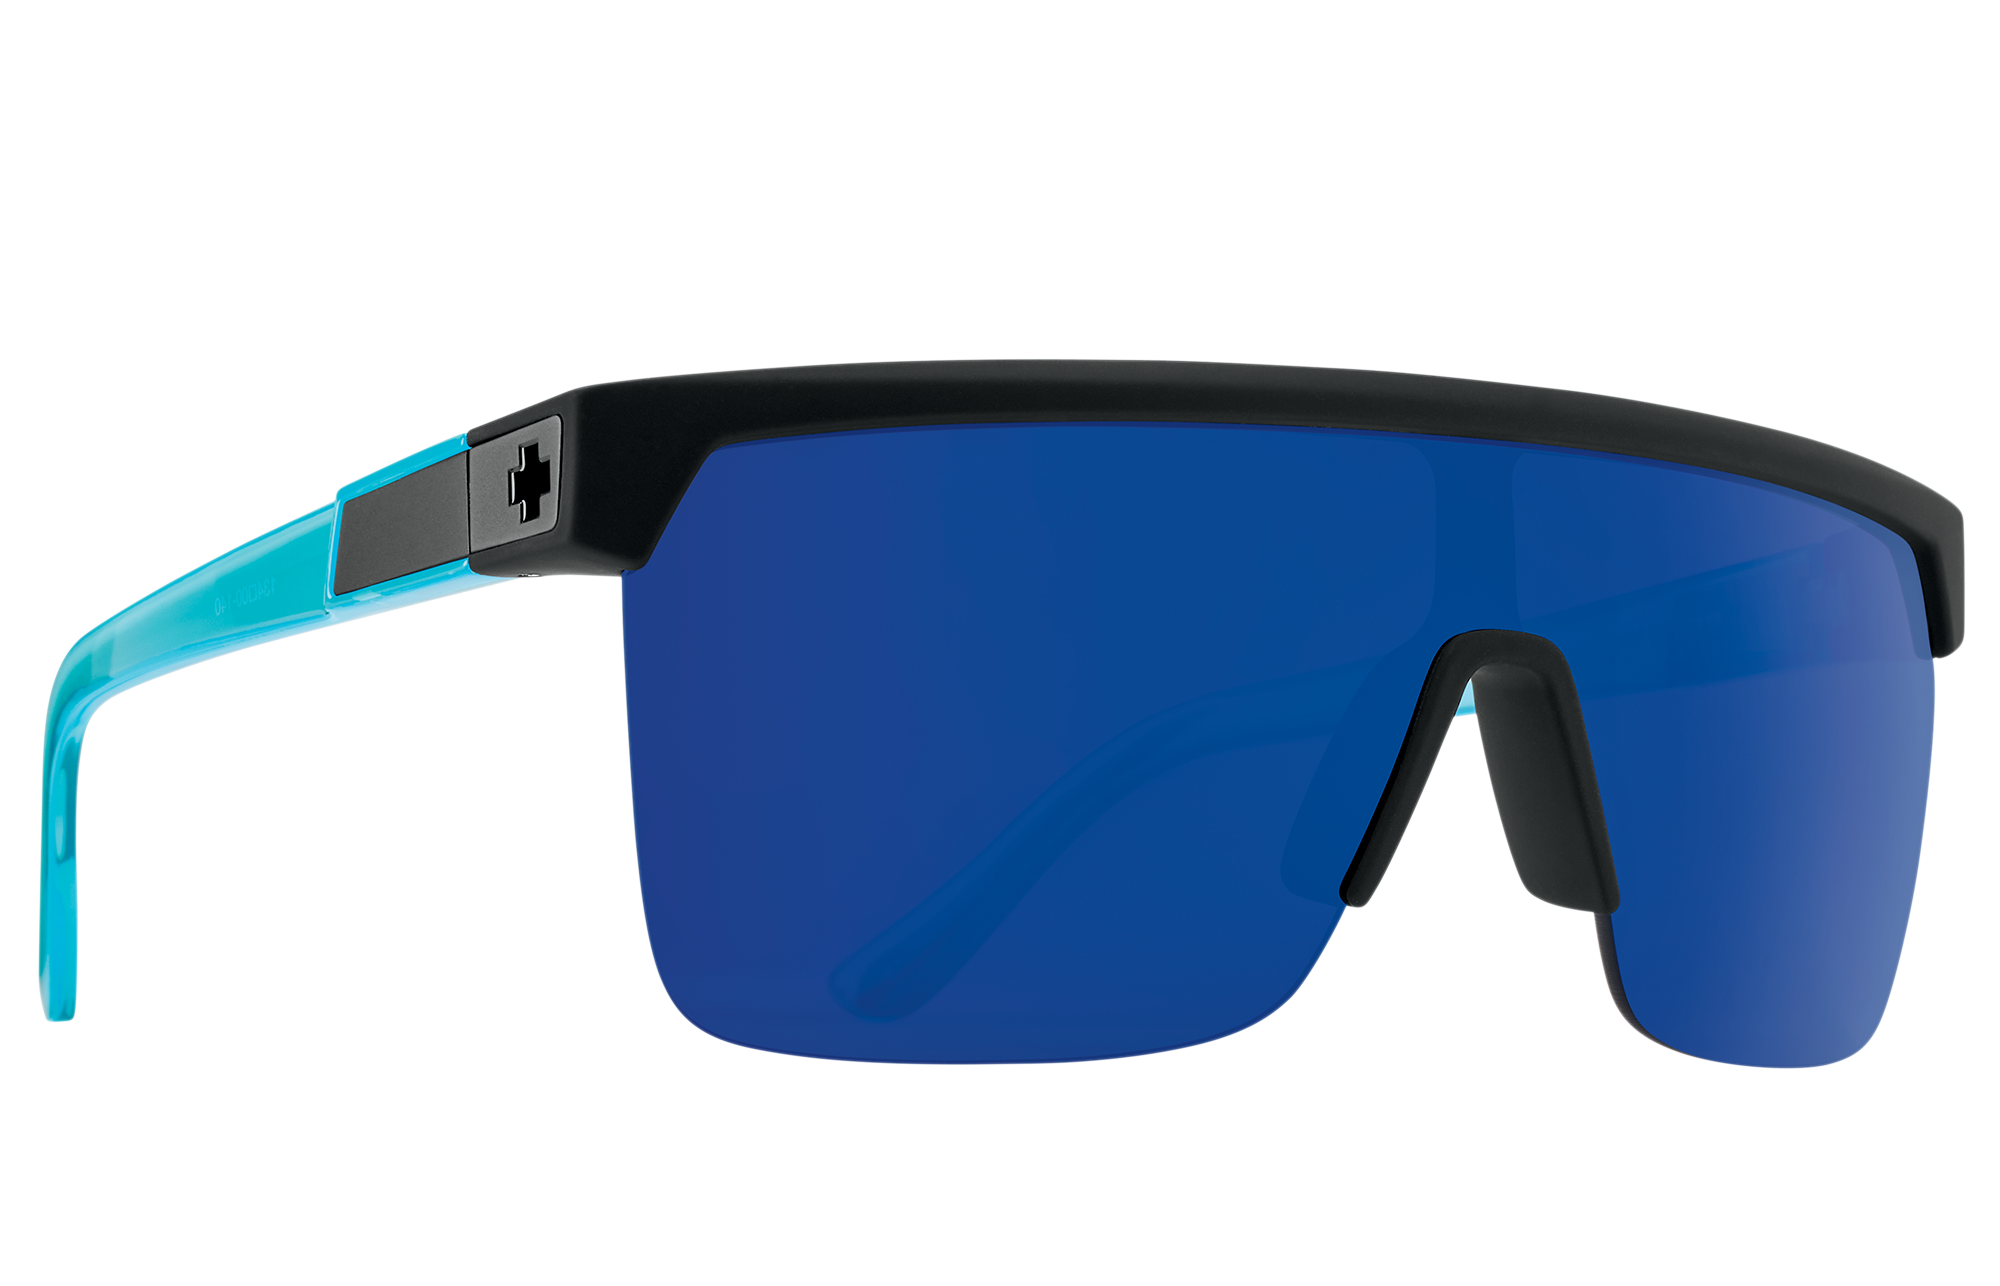 itemDesc Flynn 5050 Soft Matte Black Translucent Blue - HD Plus Gray Green with Dark Blue Spectra Mirror is not available for this combination